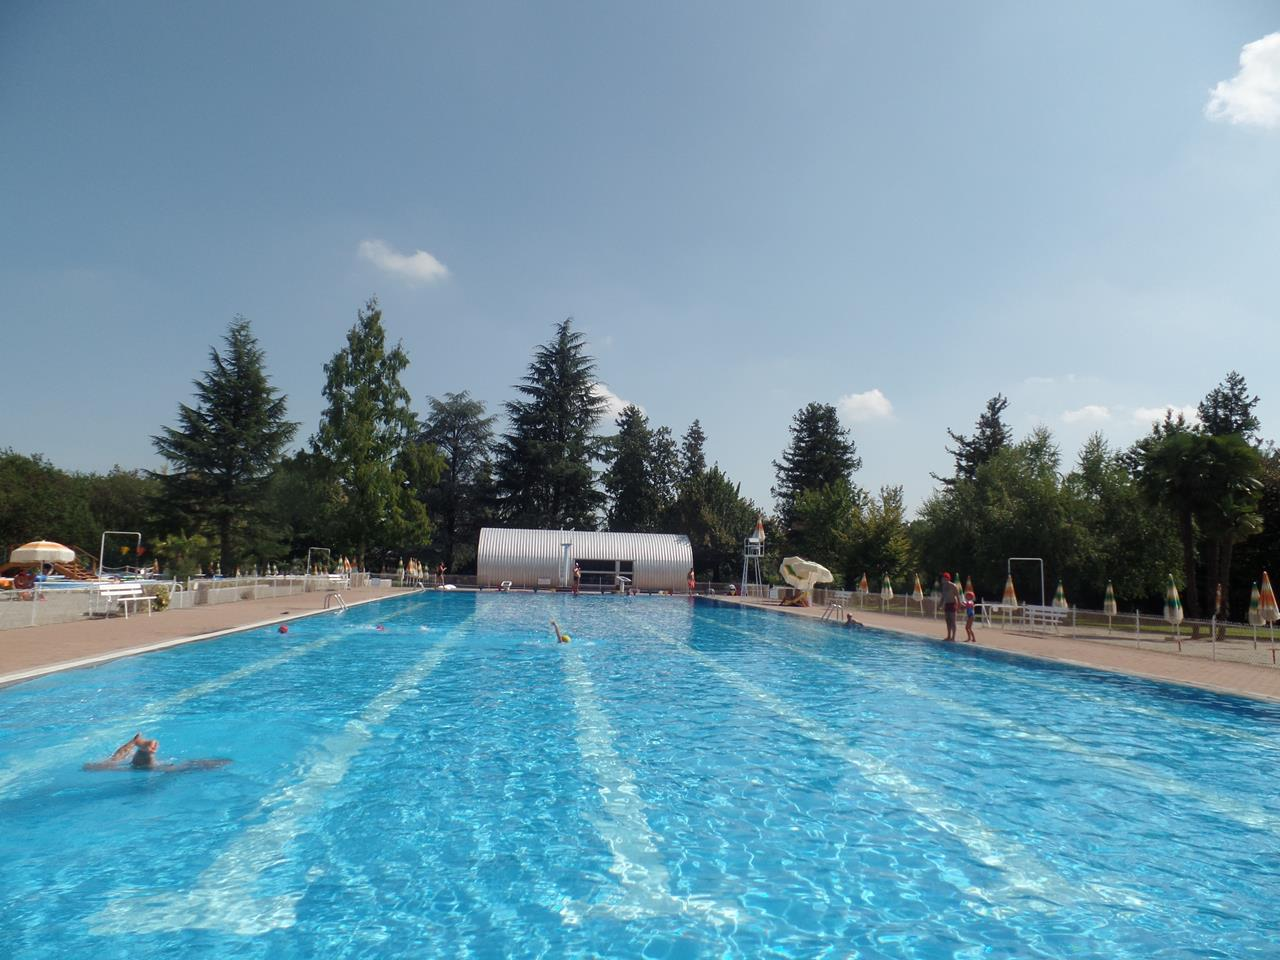 Piscina 3 Re L 39 Unico Acquapark Sport Relax